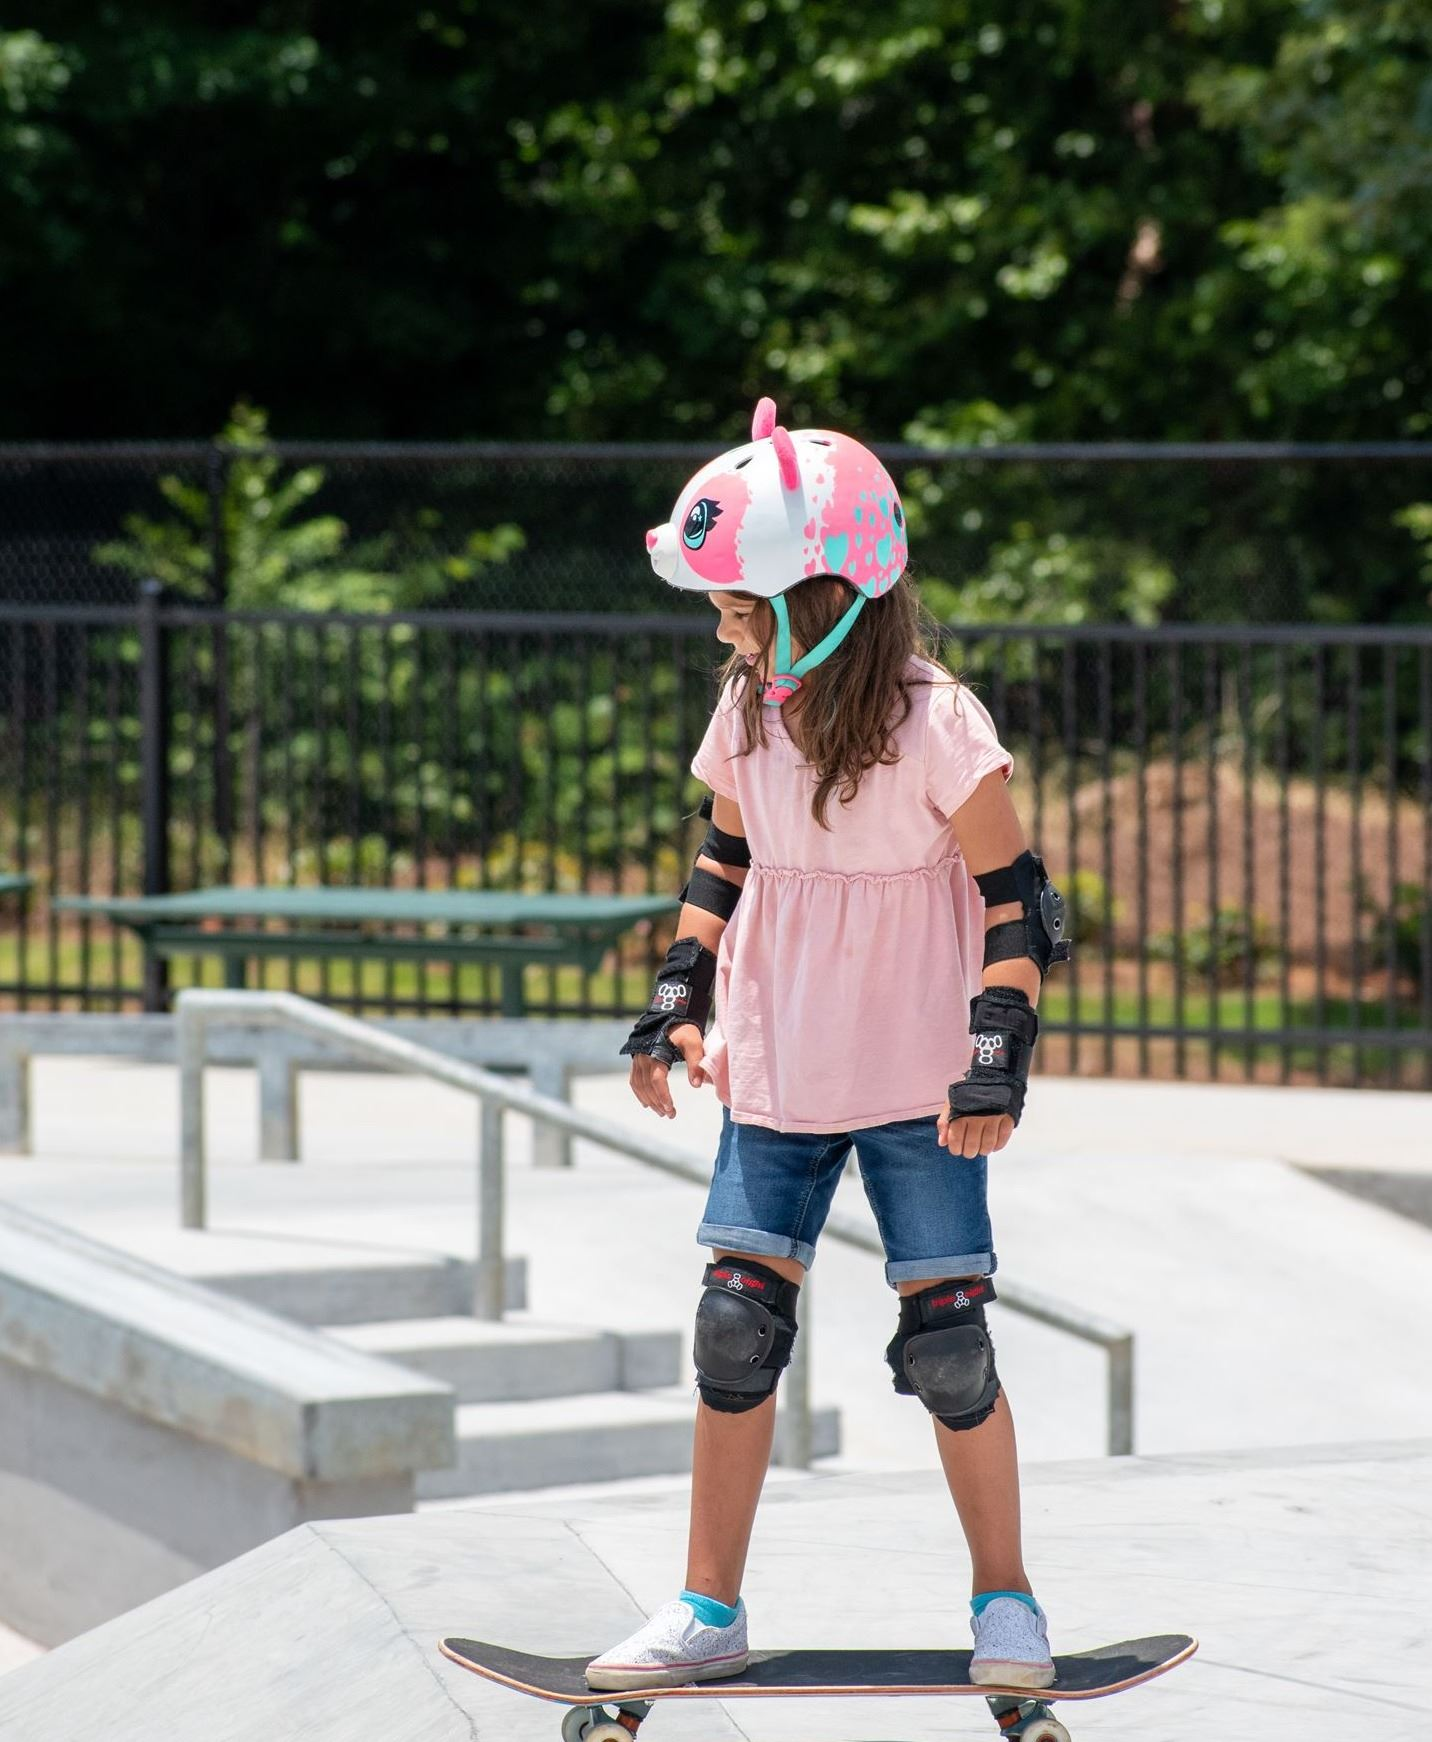 Skate Park Young Girl